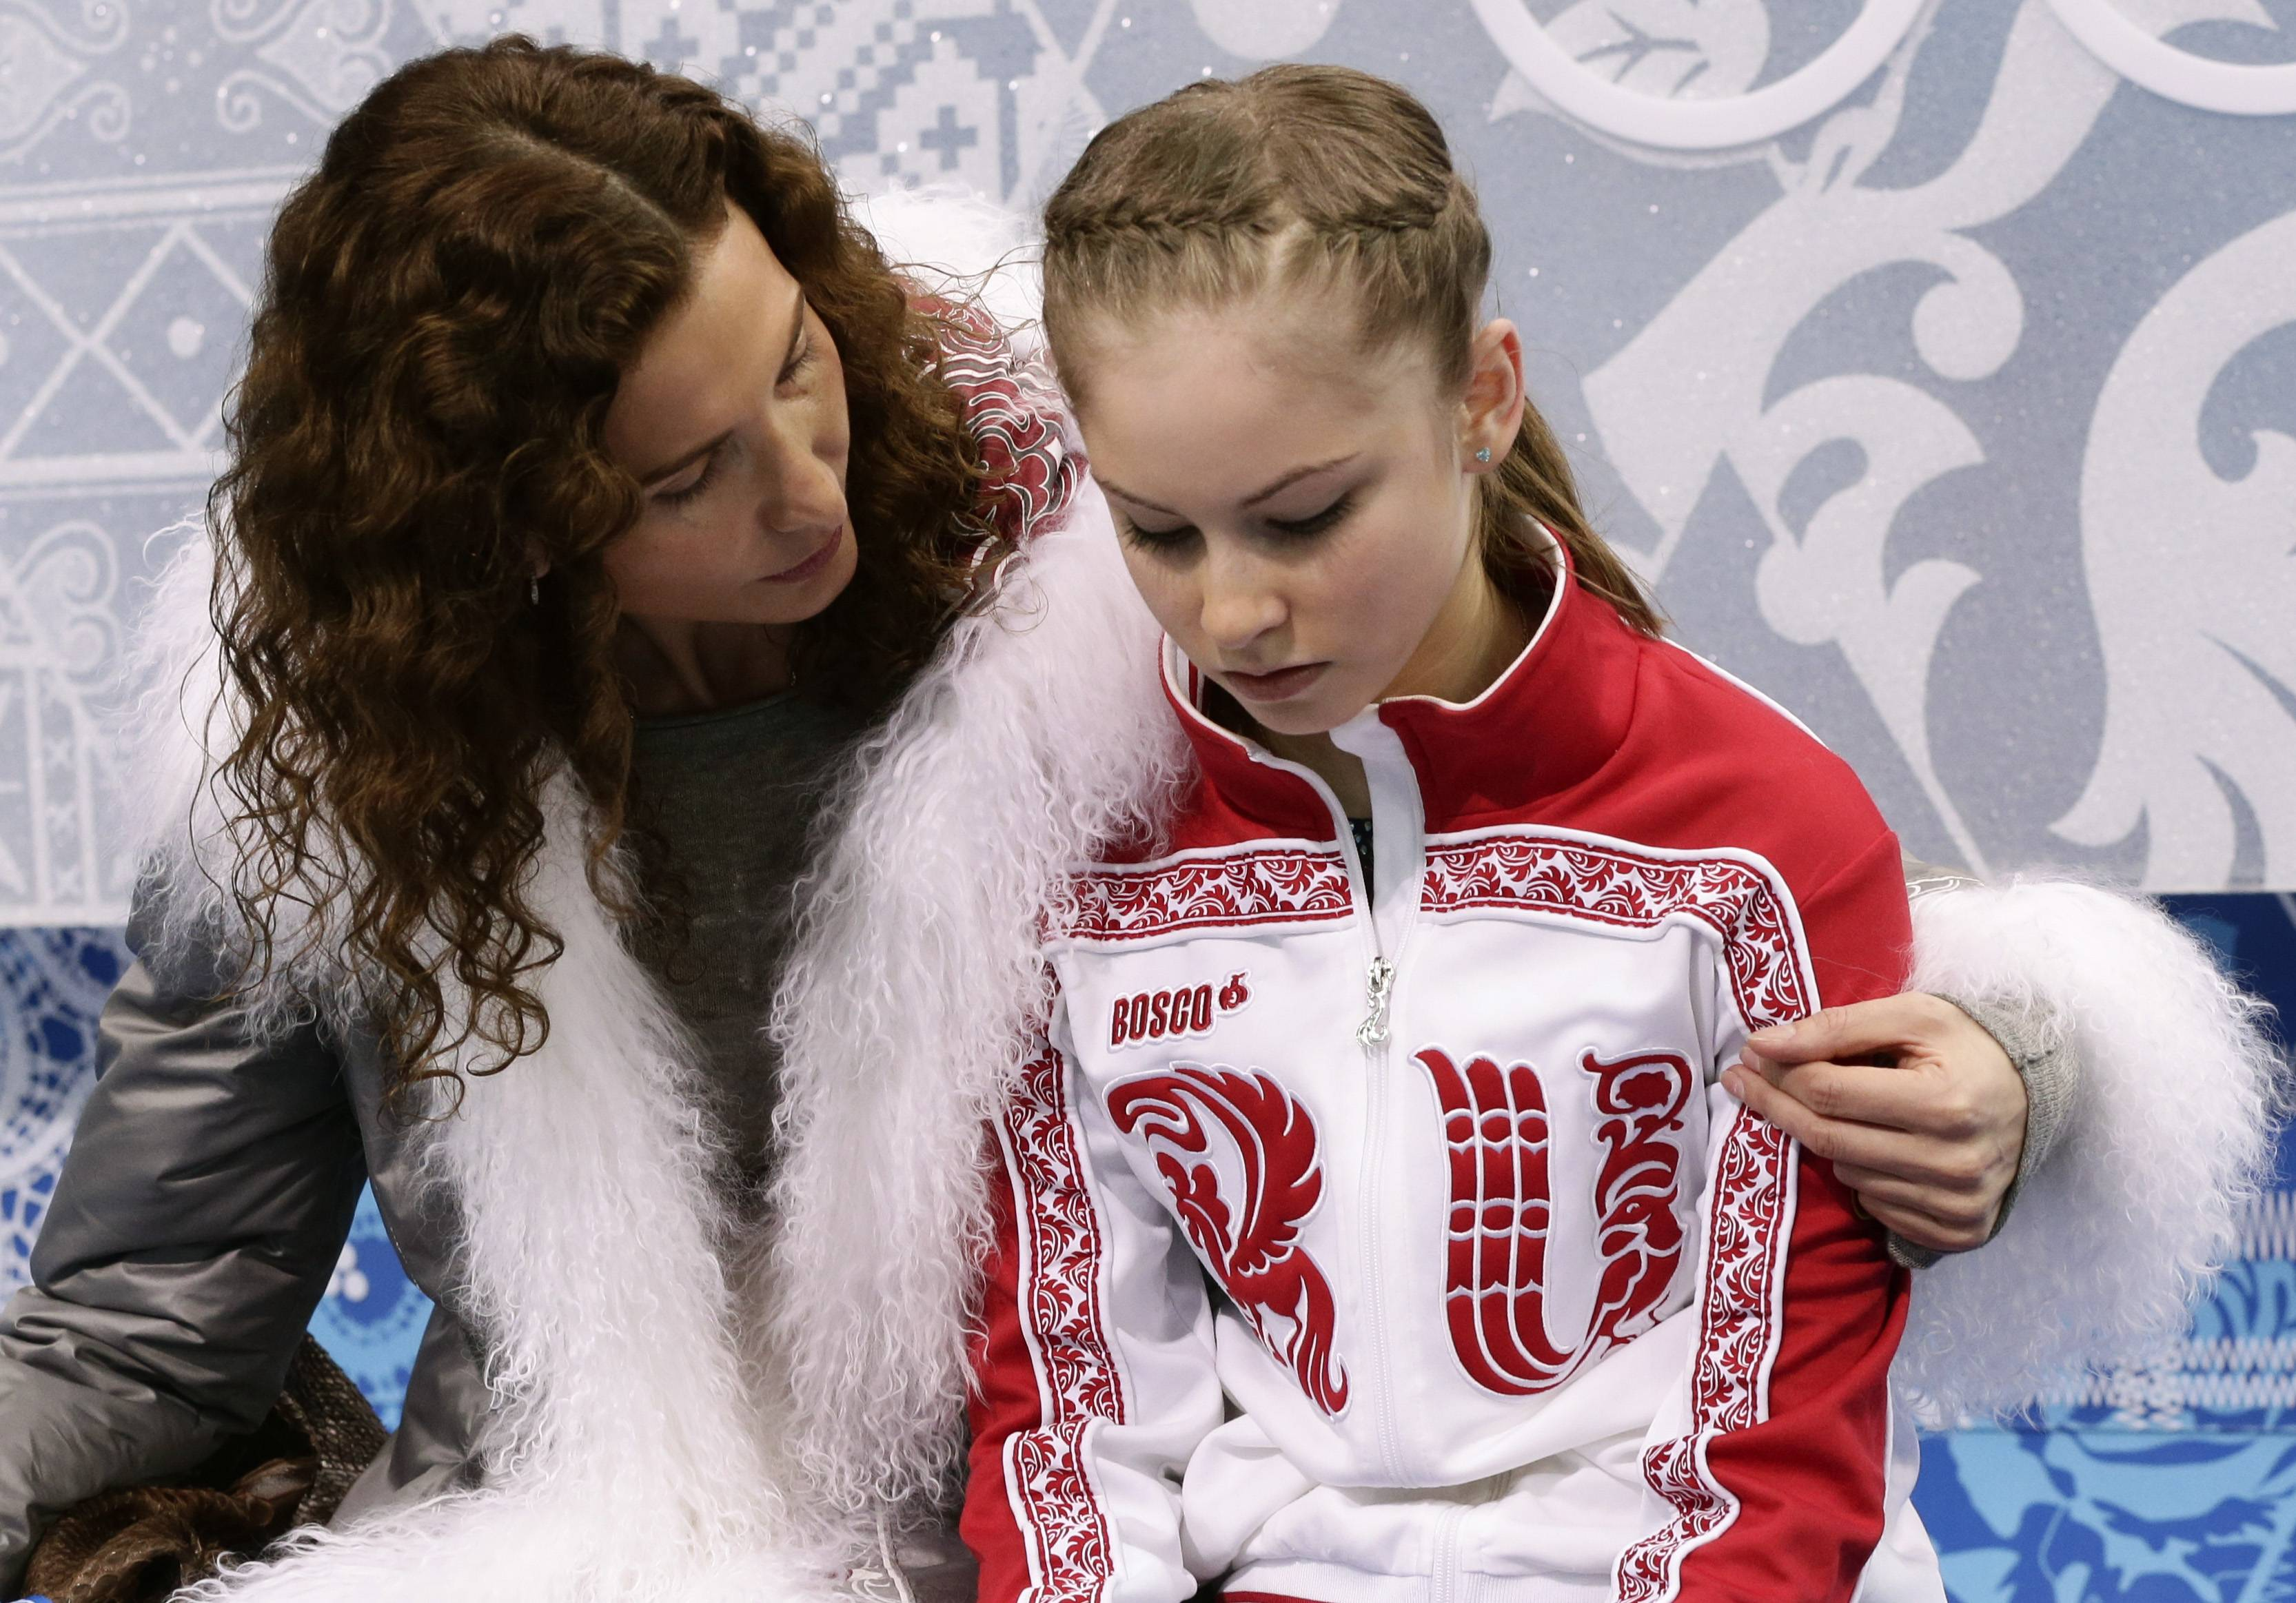 Julia Lipnitskaya of Russia, right, and her coach Eteri Tutberidze wait in the results area after she completed her routine in the women's short program figure skating competition.